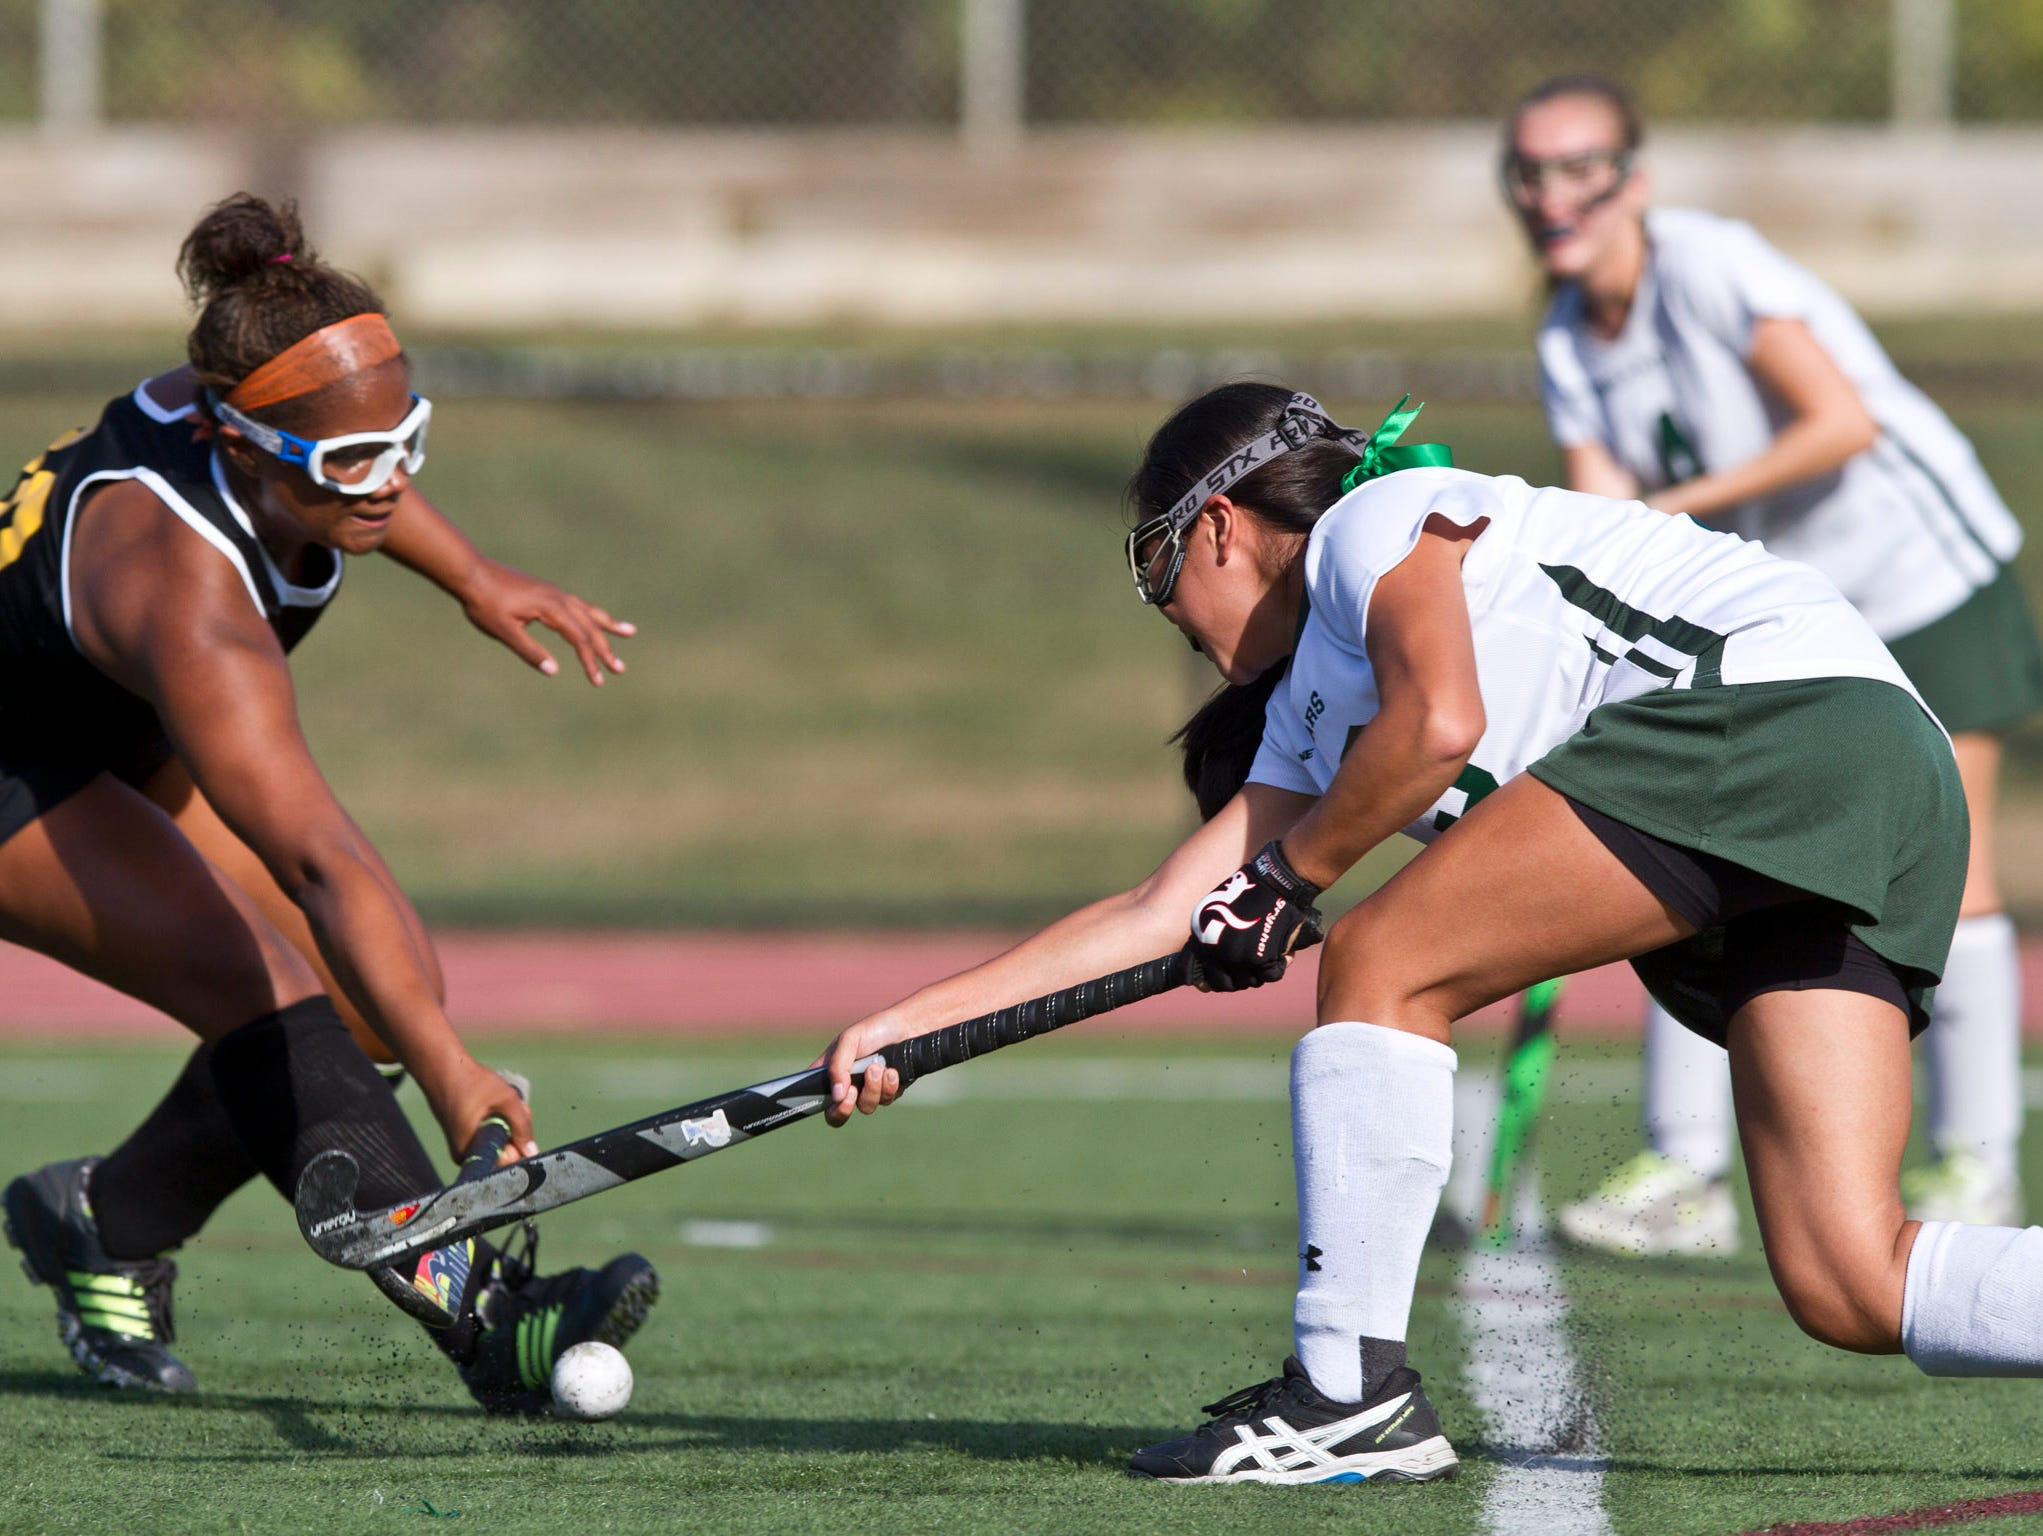 Piscataway's Asia Buffalo defends against a shot on goal by East Brunswick's Sydney Huang. Piscataway vs East Brunswick field hockey. 72670492 East Brunswick, NJ Thursday, September 24, 2015 @dhoodhood